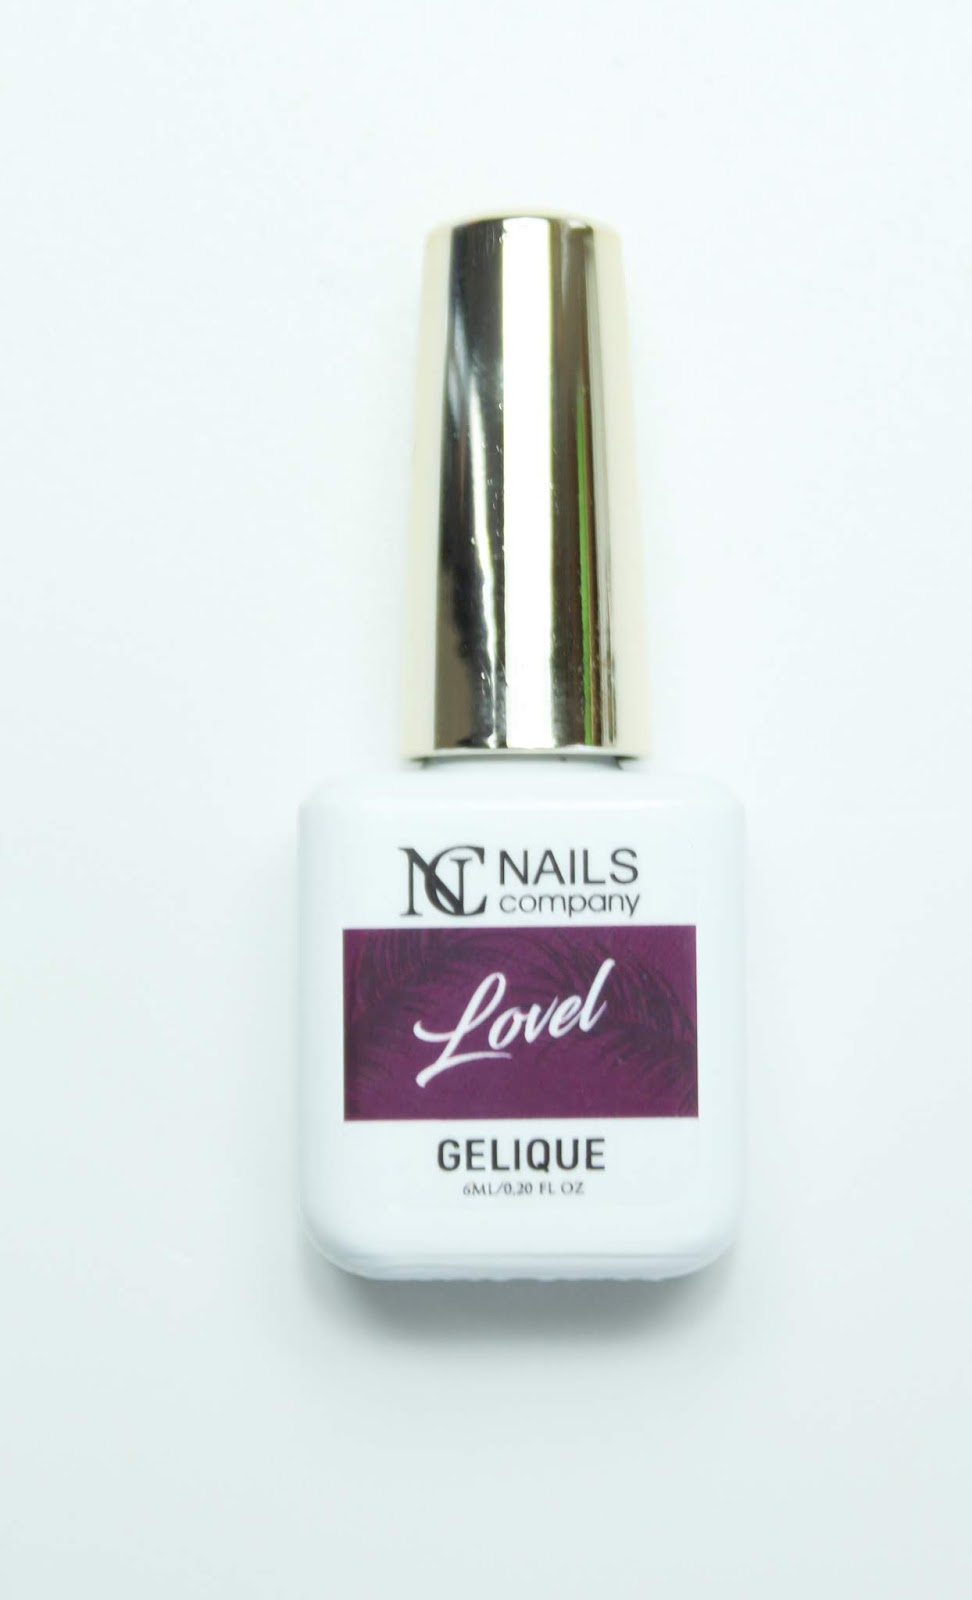 NC Nails Company Lovel